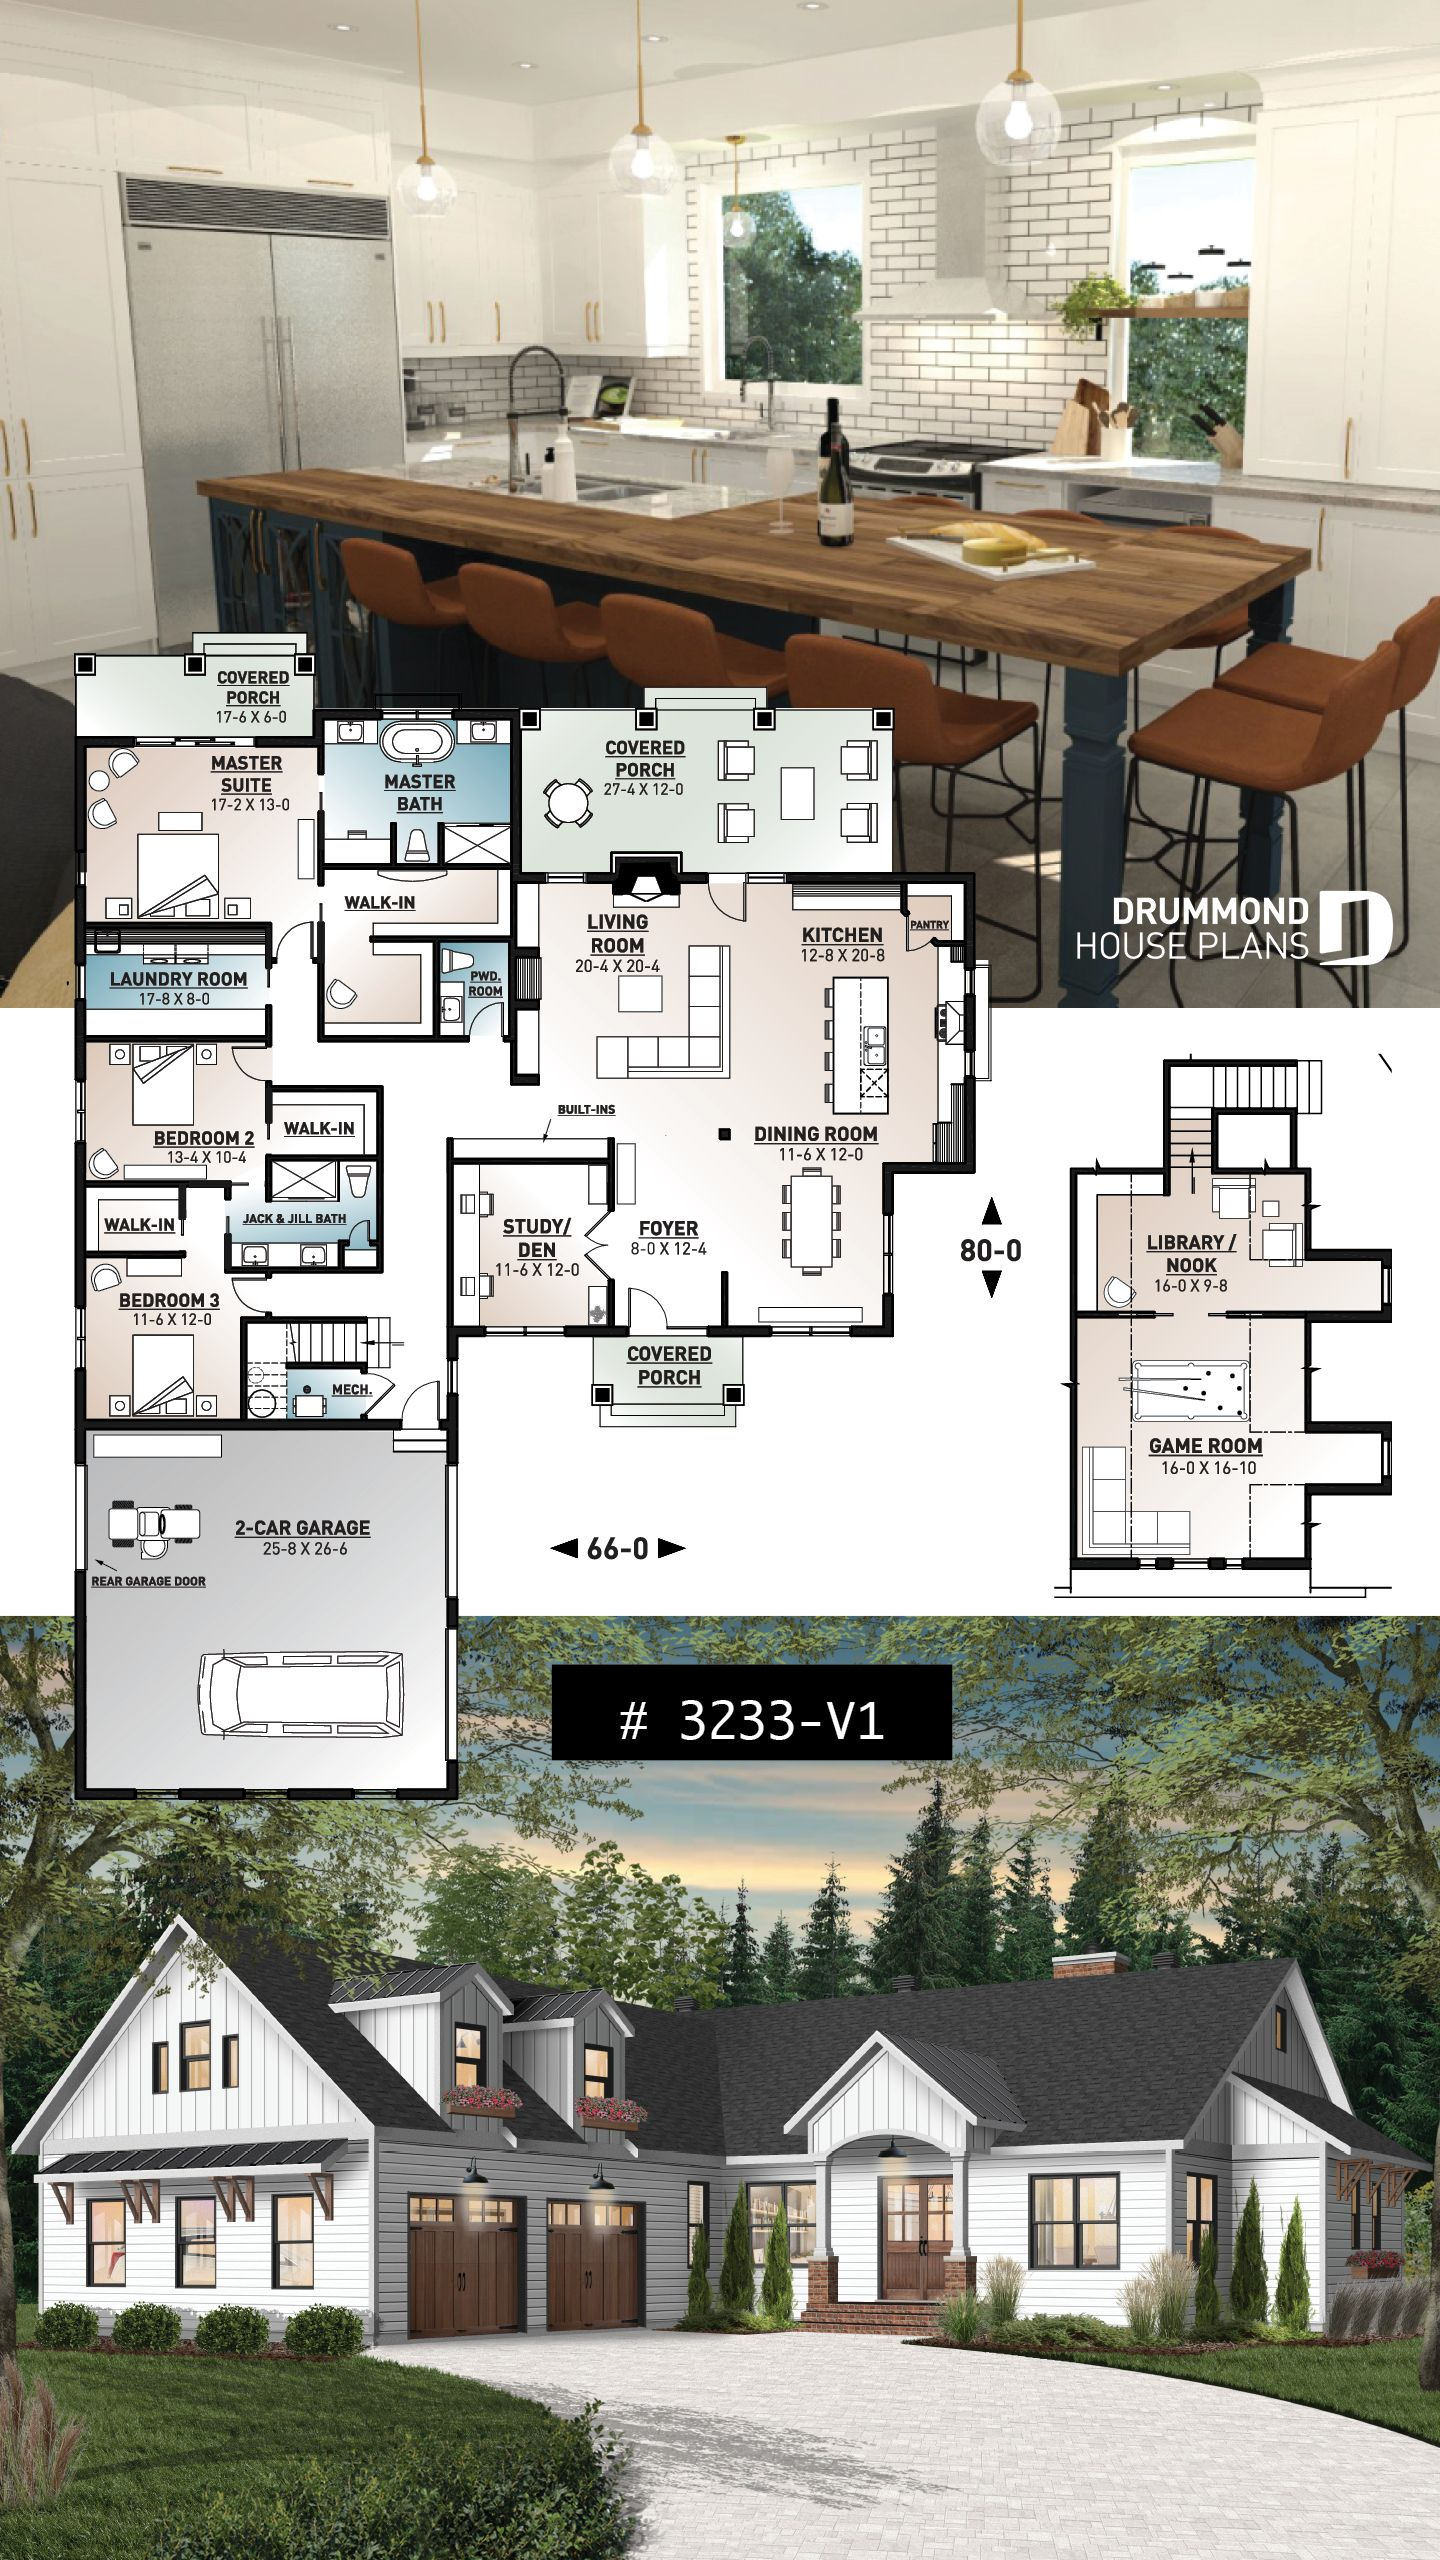 3 to 4 bedroom country ranch, garage, master suite with ... Ranch House Plan Balcony on balcony photography, balcony decorating, balcony painting, balcony office, balcony homes, balcony house ideas, balcony flowers, balcony design, balcony deck plans, balcony building plans, balcony bedroom,